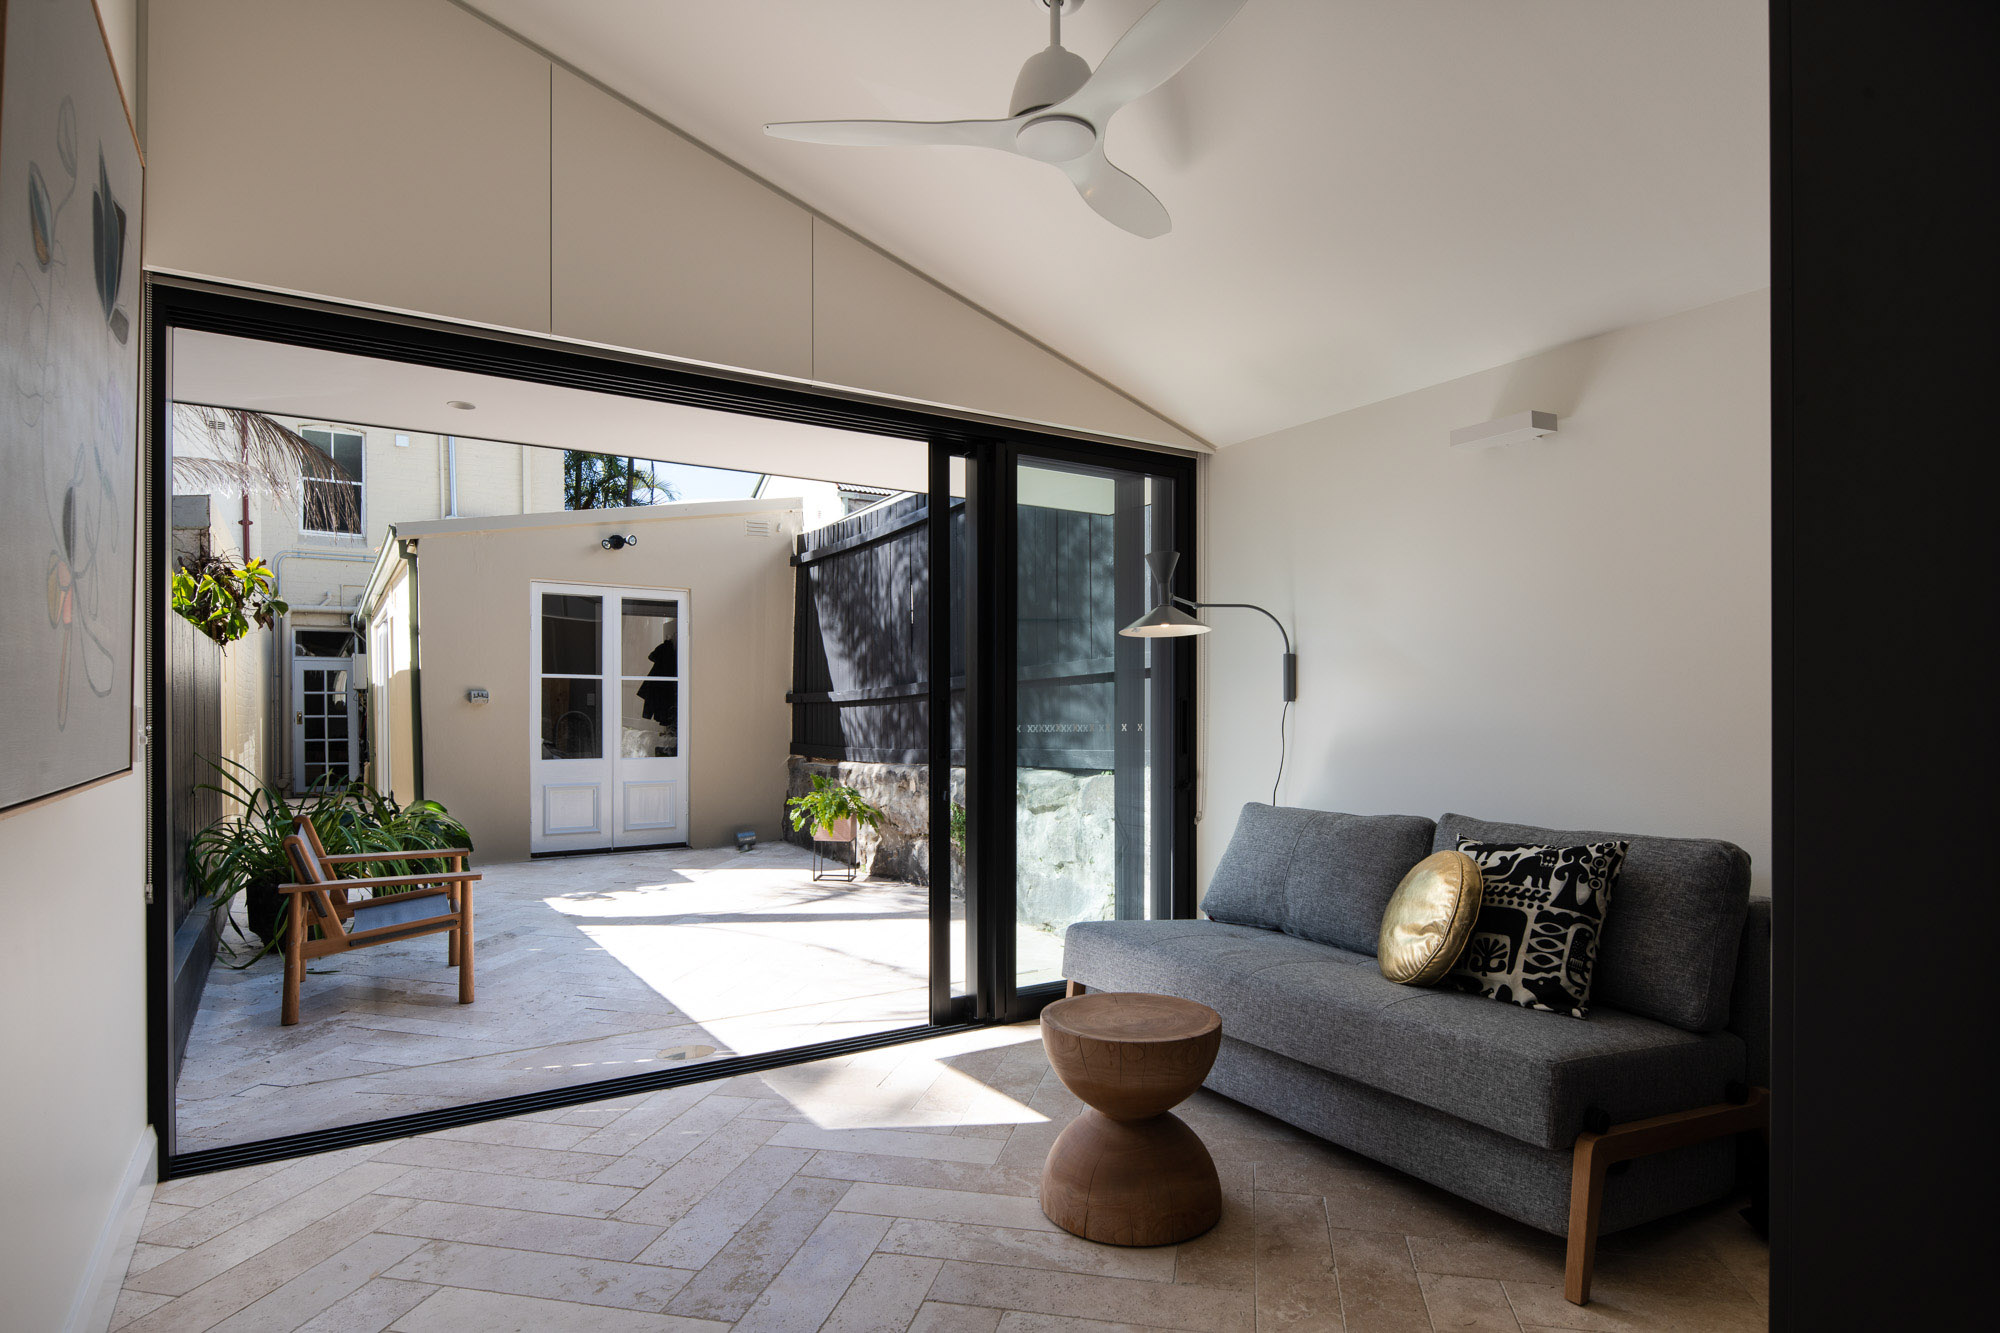 Blog hero-article-images 5-ways-make-small-outdoor-space-feel-bigger